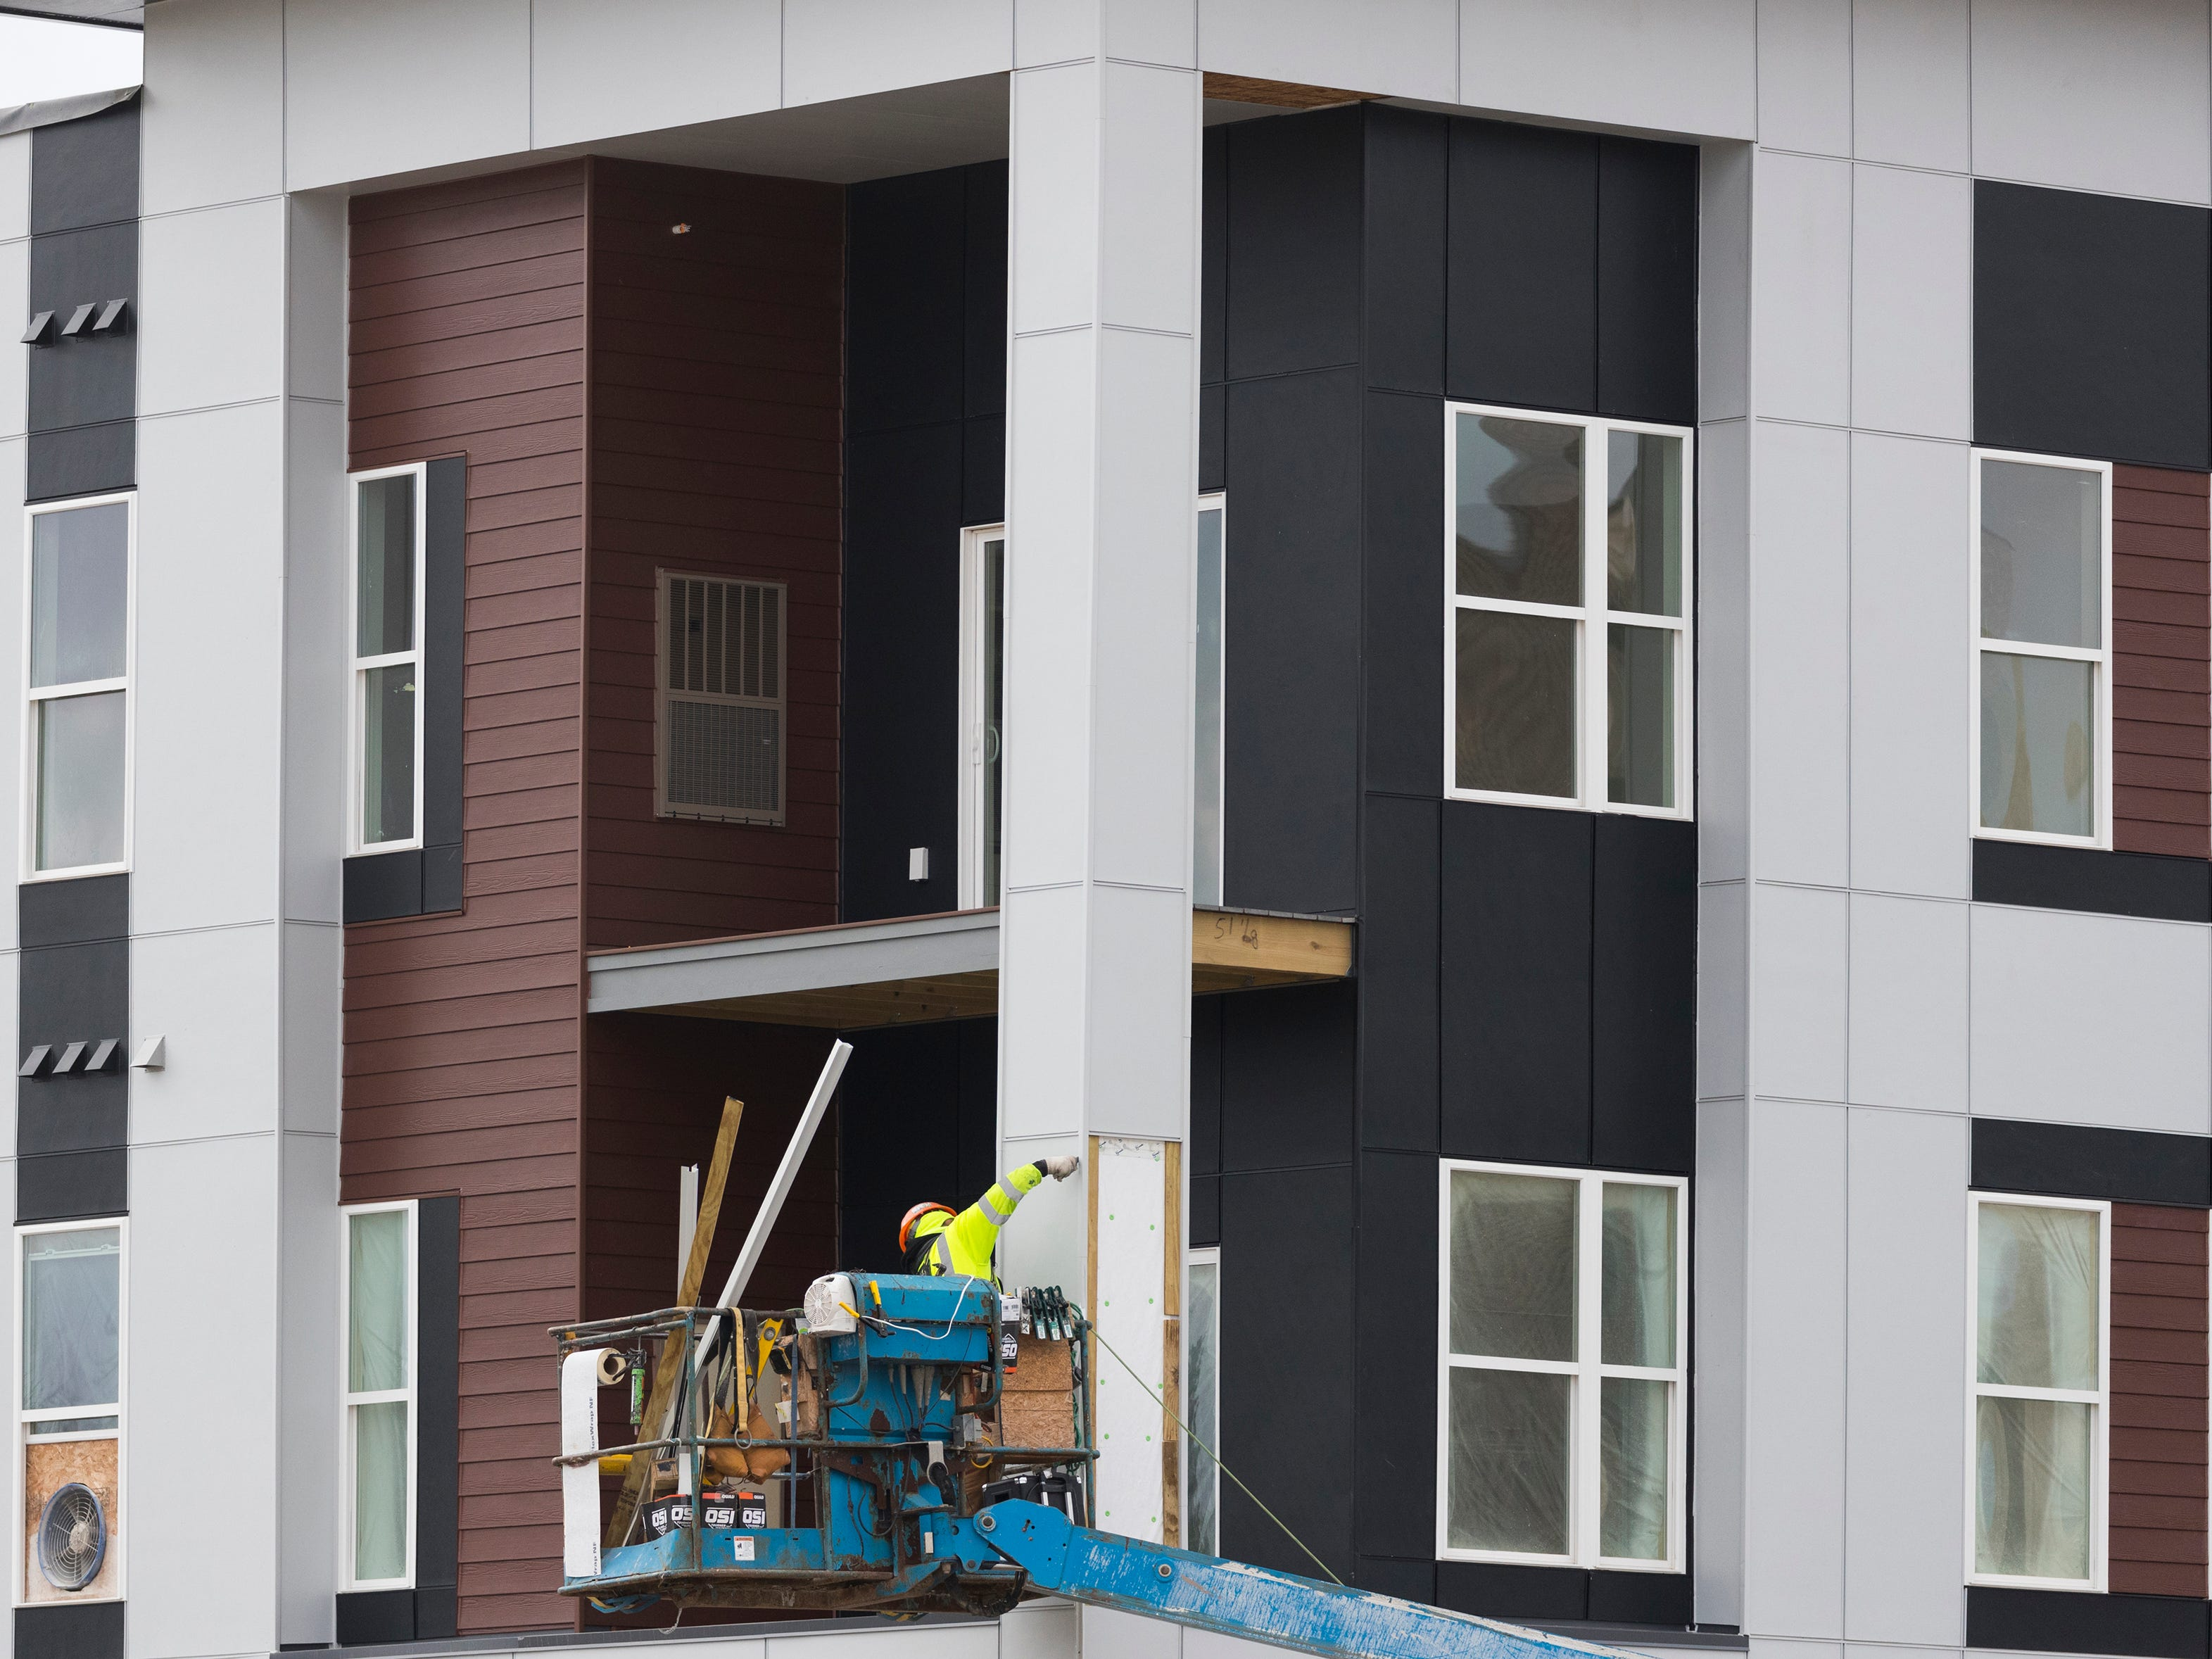 Exterior work continues on apartments at the 48-acre mixed development 84 South.